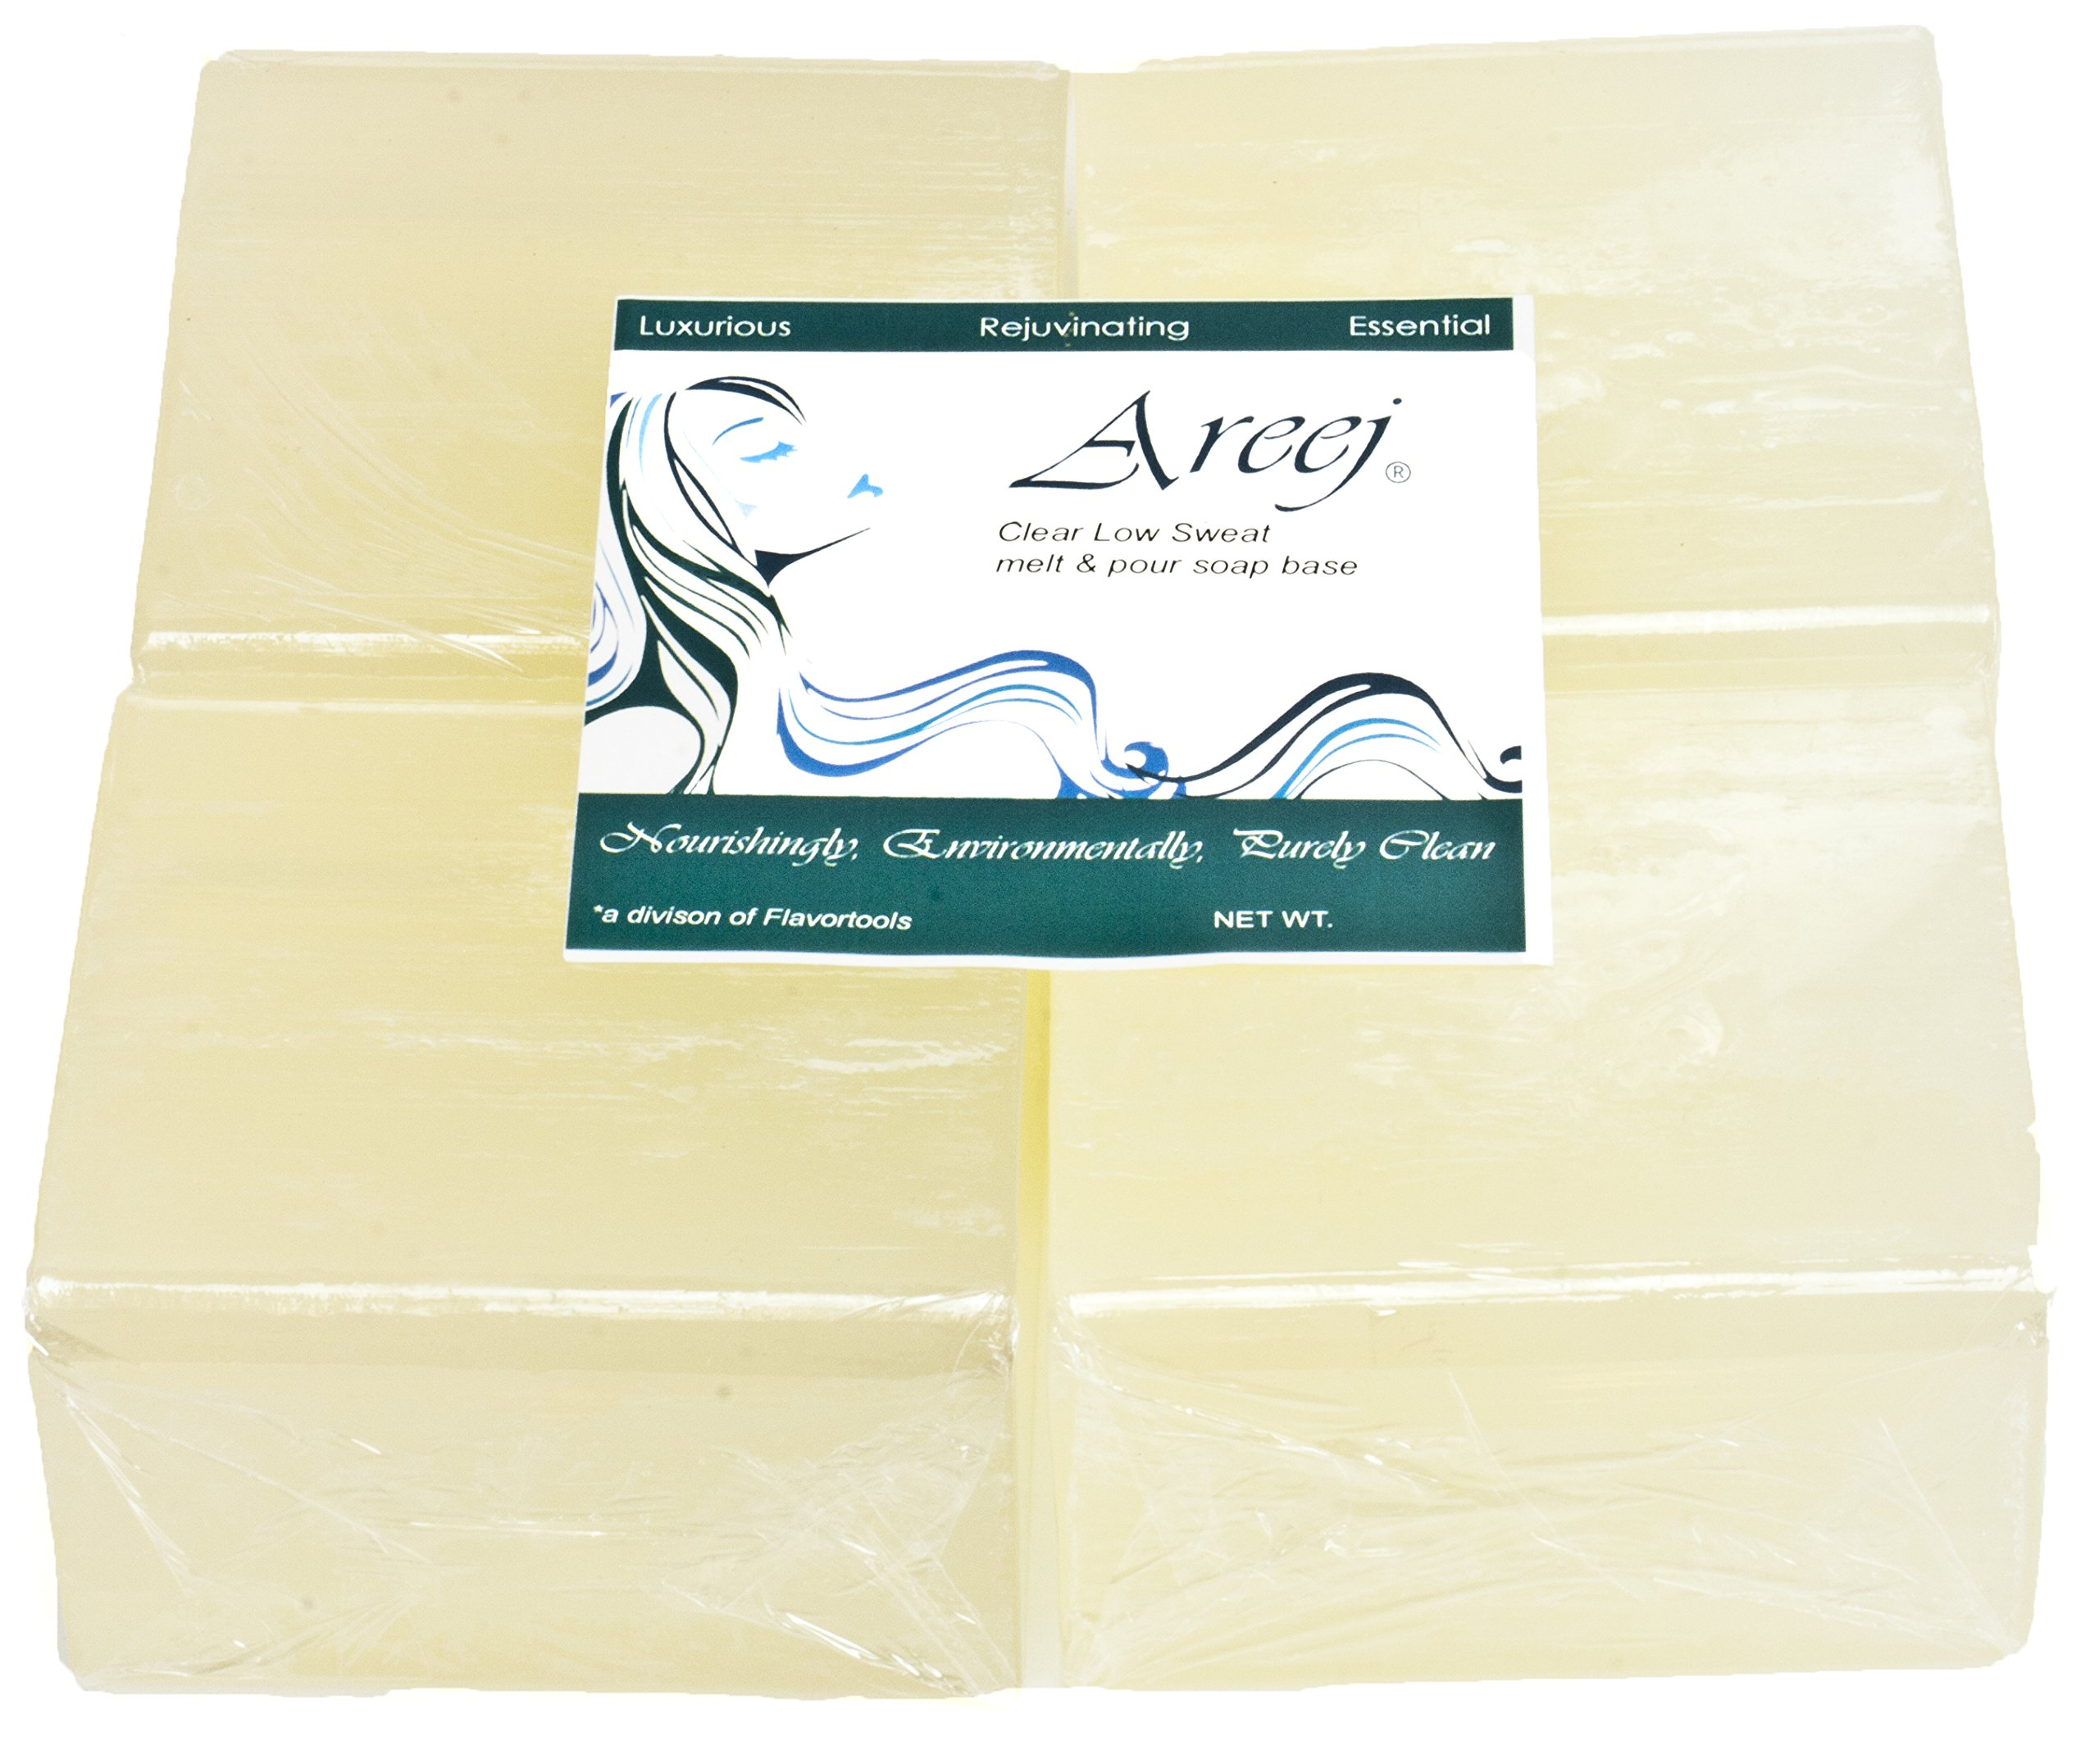 Areej Hypo-Allergenic Biodegradable Clear Low Sweat Soap Base made with 100% Pure Natural Glycerin - 10 Pounds